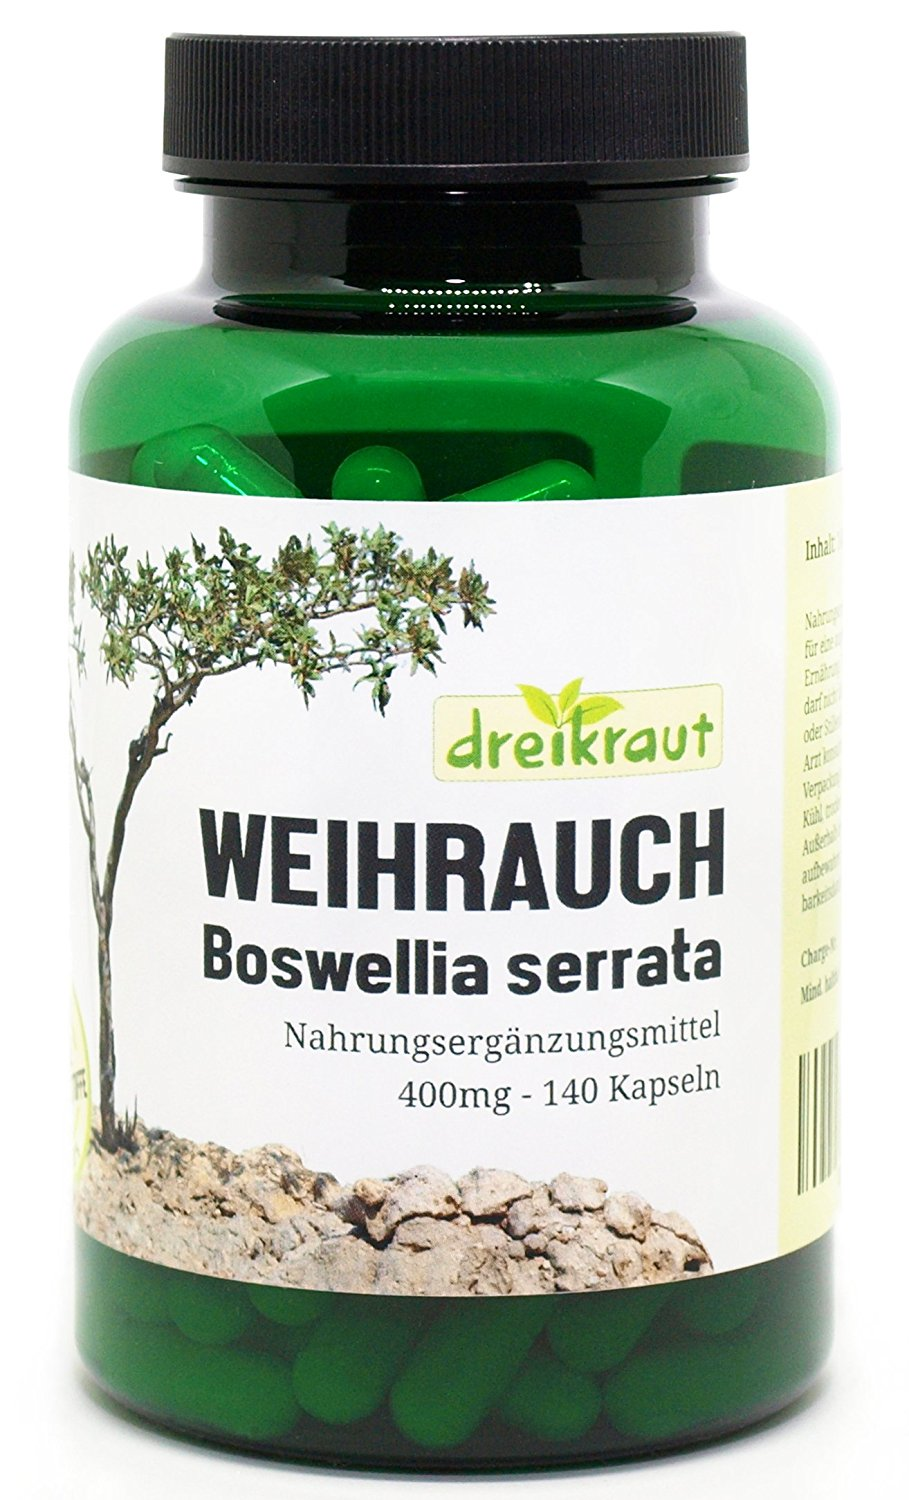 weihrauch kapseln boswellia serrata superfoods. Black Bedroom Furniture Sets. Home Design Ideas